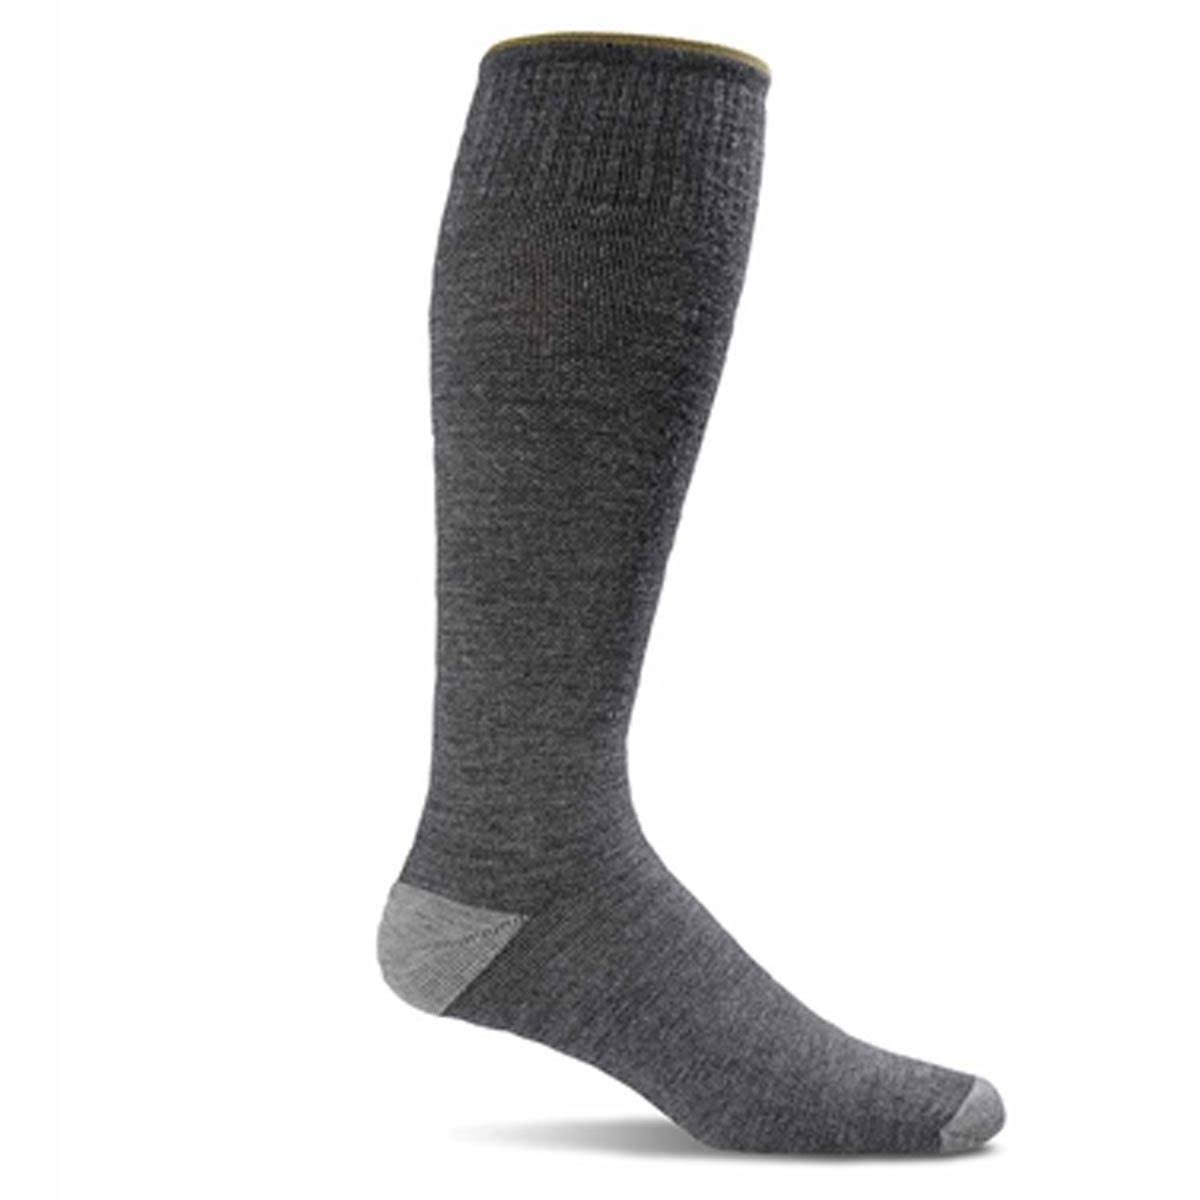 Sockwell Men's Elevation Graduated Compression Socks - Grey, Large/XLarge